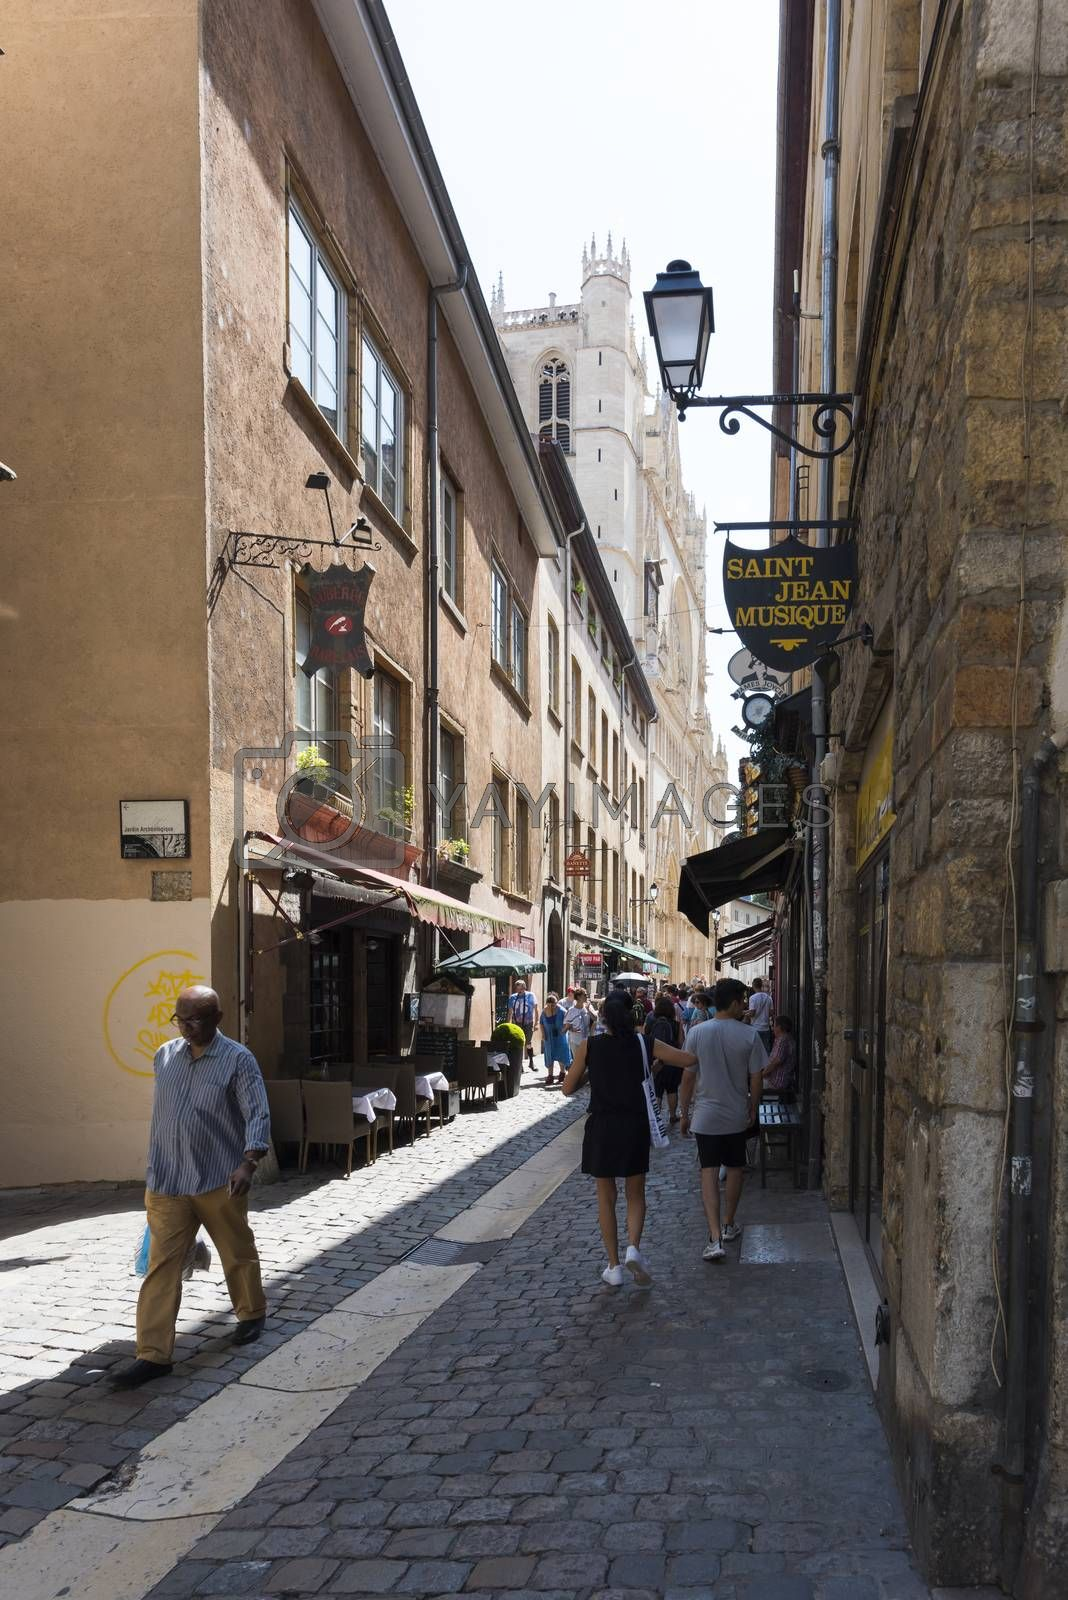 Street Saint Jean going to the Place and Cathedral Saint Jean in Summer, Lyon, France